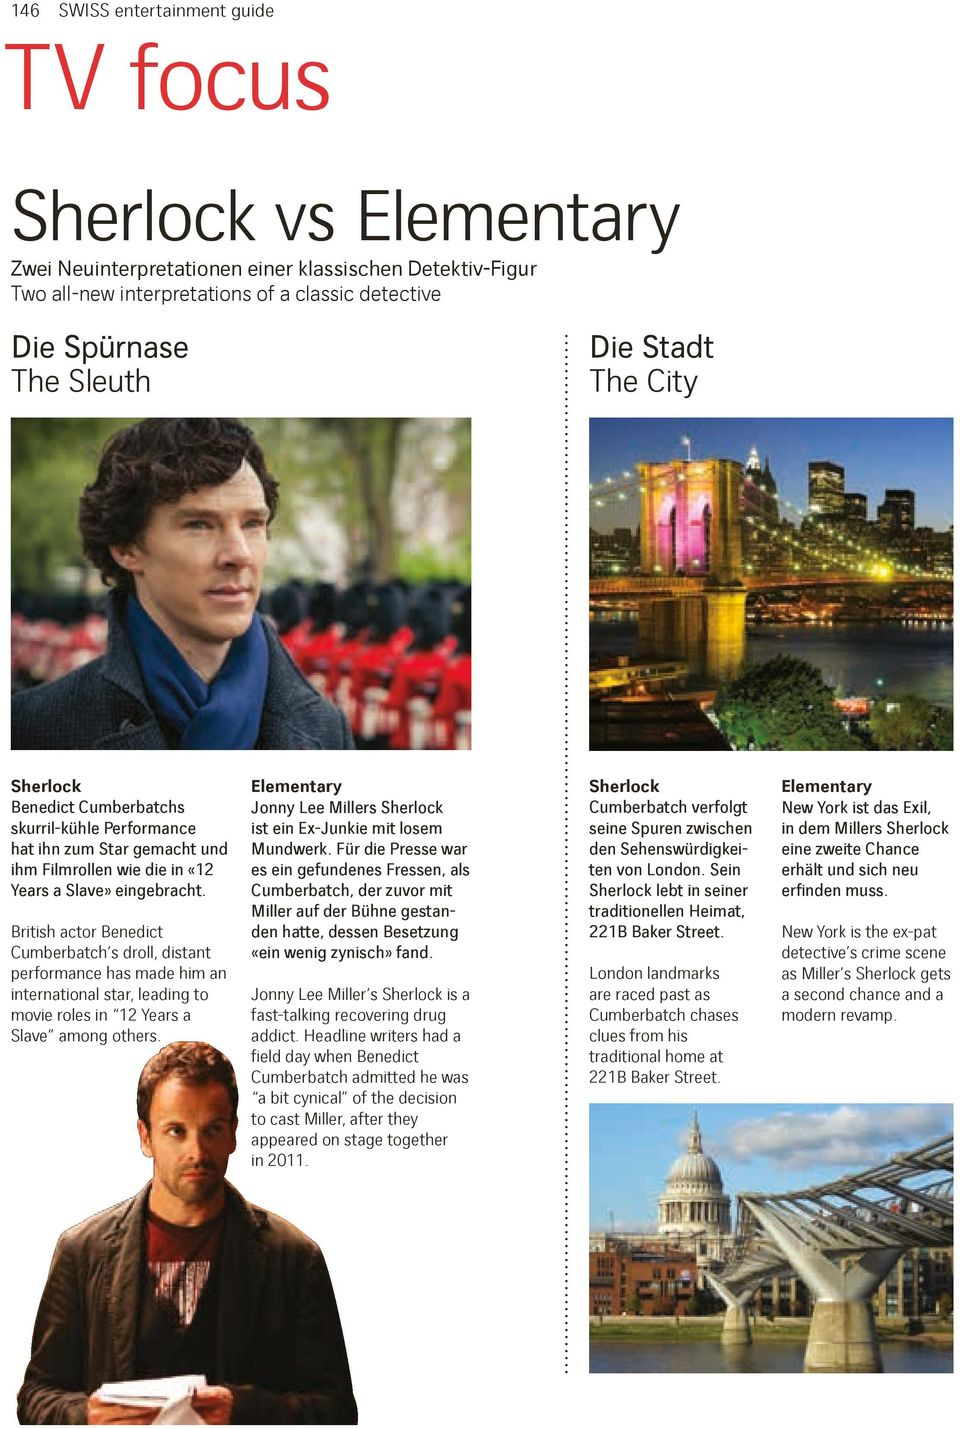 ritish actor enedict Cumberbatch s droll, distant performance has made him an international star, leading to movie roles in 12 Years a Slave among others. SWISS_May14_140 Edit_v4.